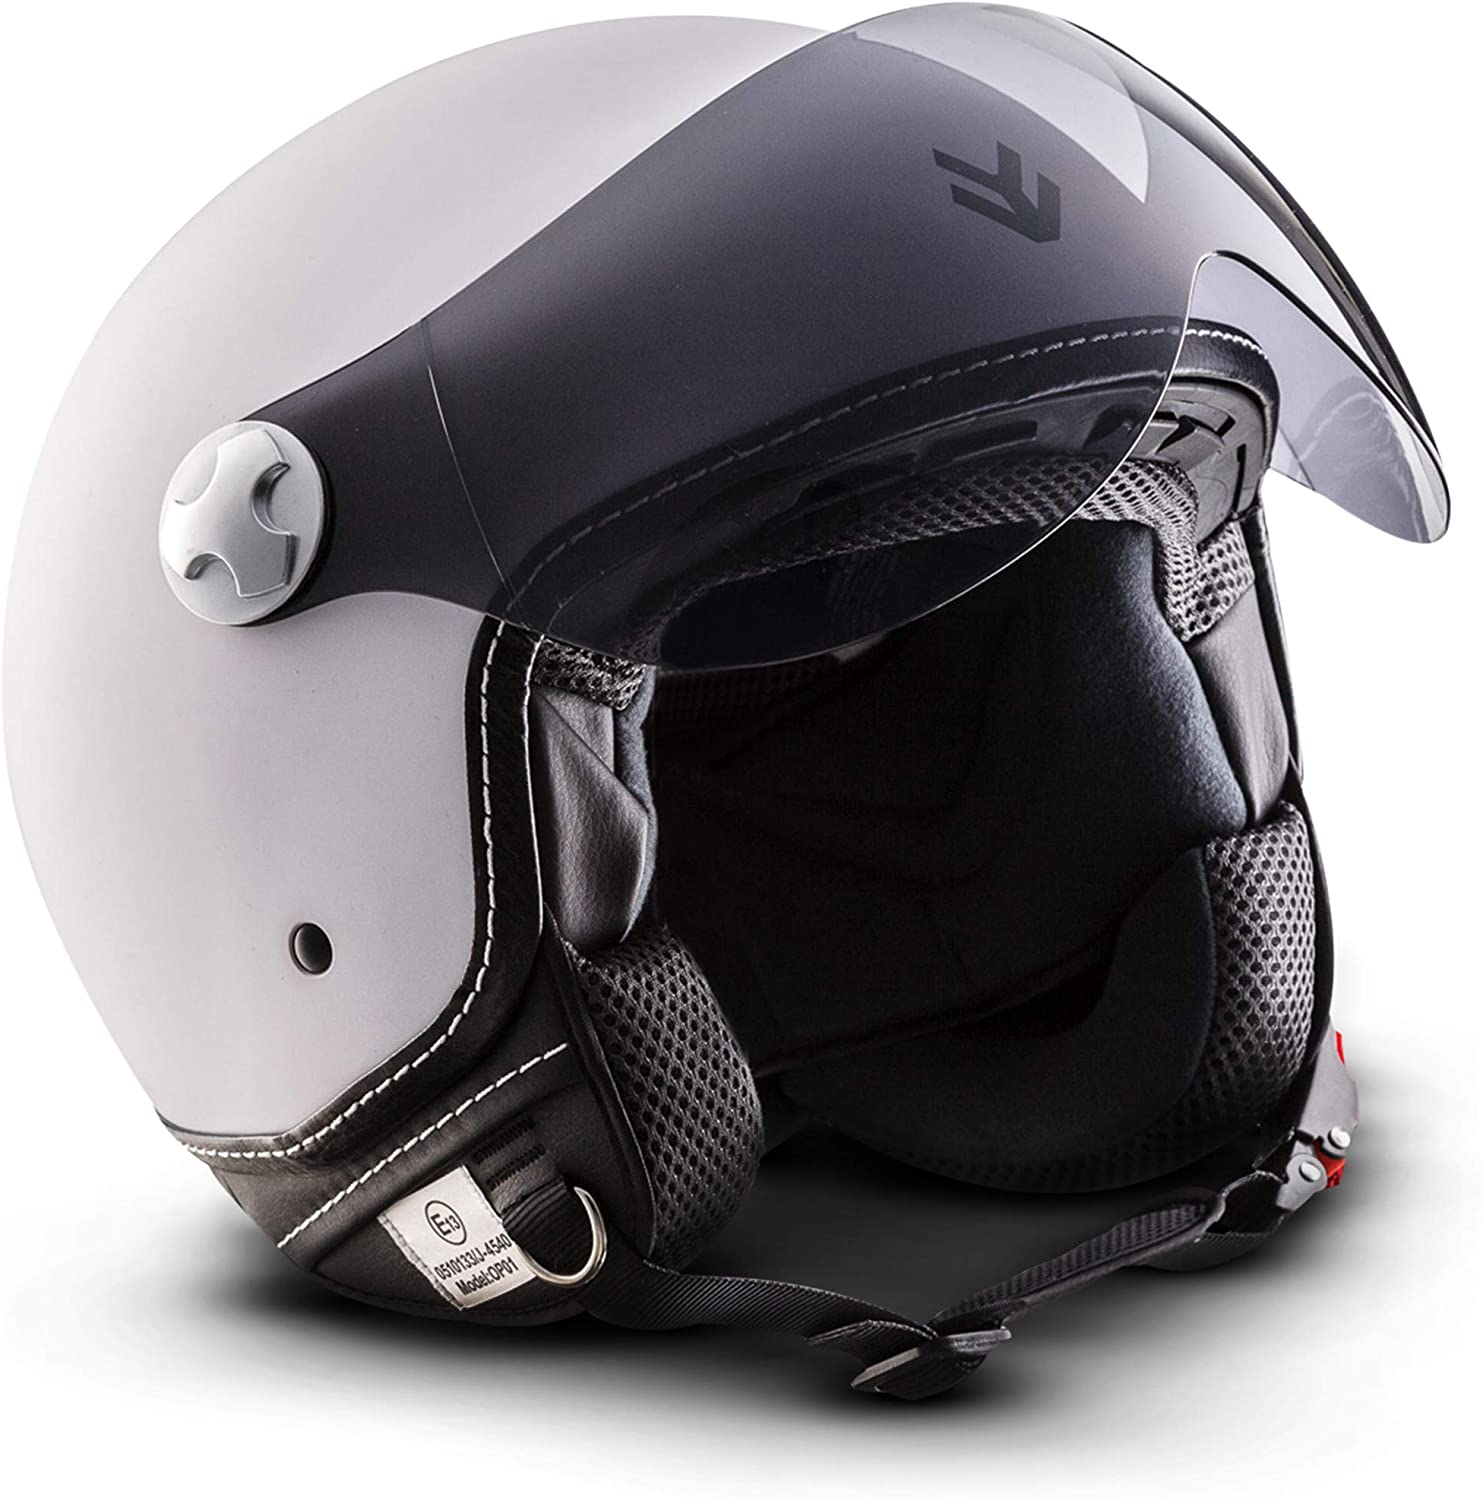 XXL DOT certified Italy//Multicoloured ARMOR Helmets AV-47 Open Face Helmet 63-64cm